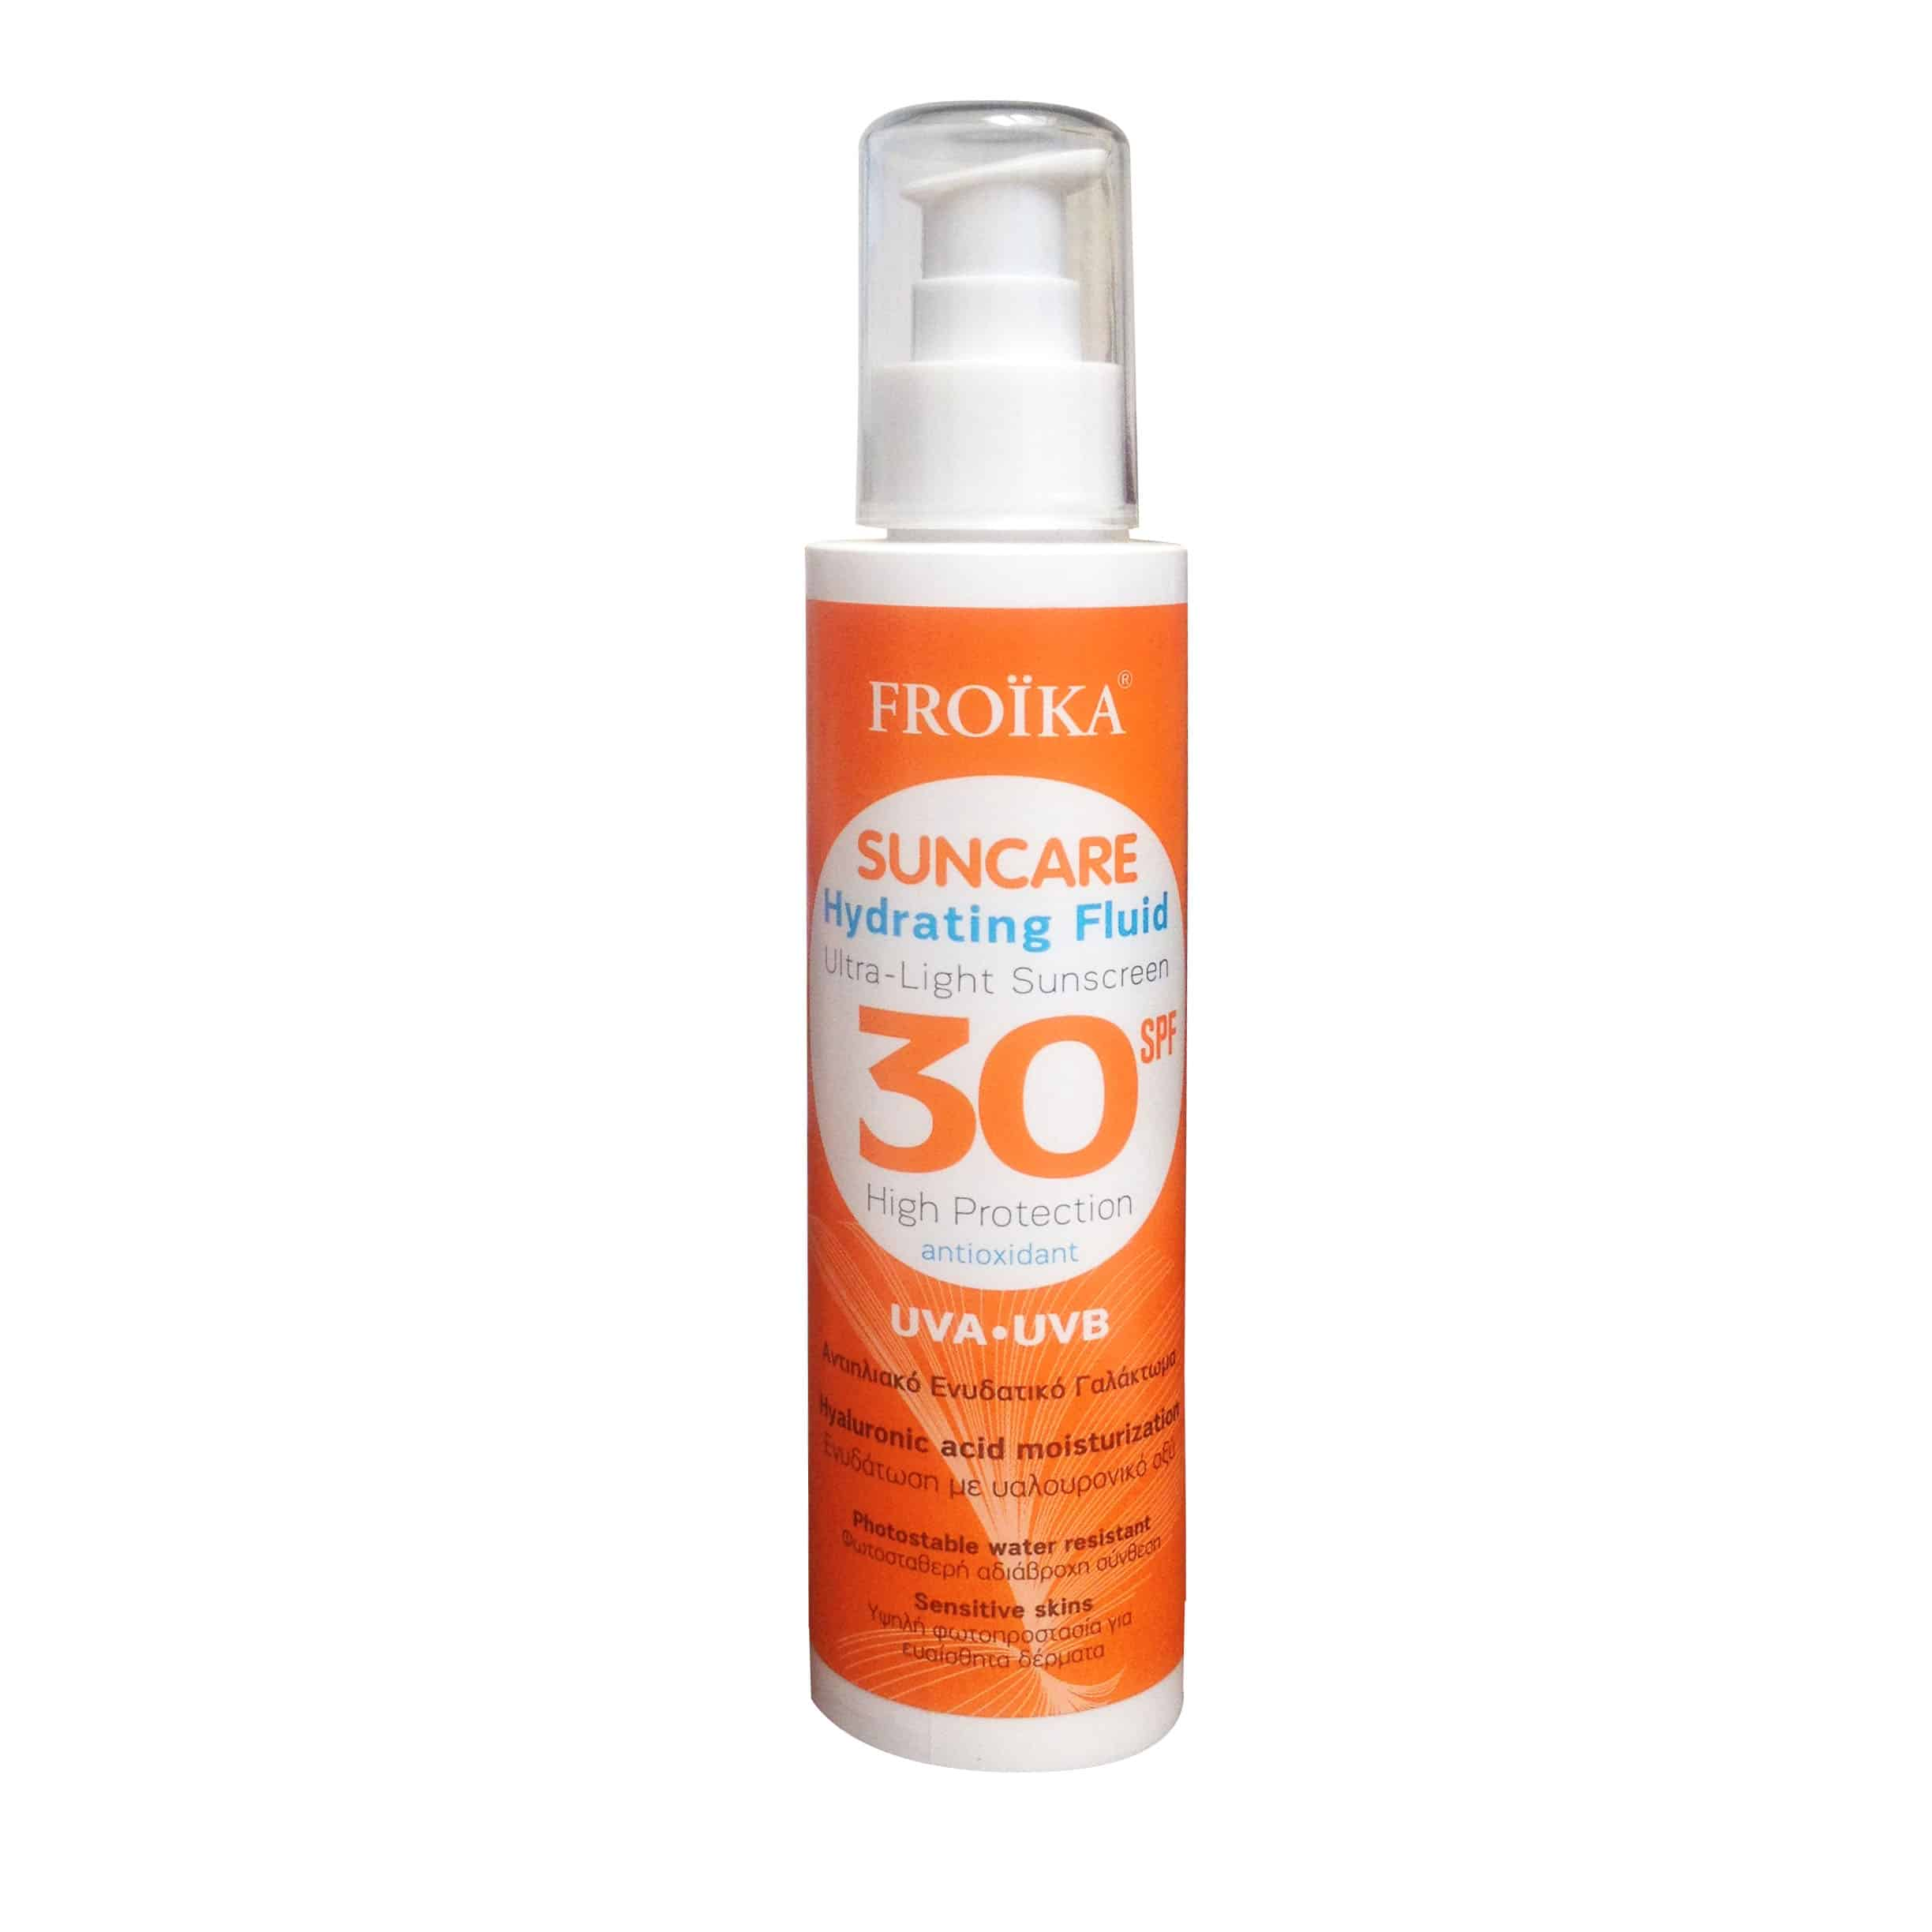 Froika Suncare Hydrating Fluid SPF30 Αντιηλιακό Ενυδατικό Γαλάκτωμα, 150ml